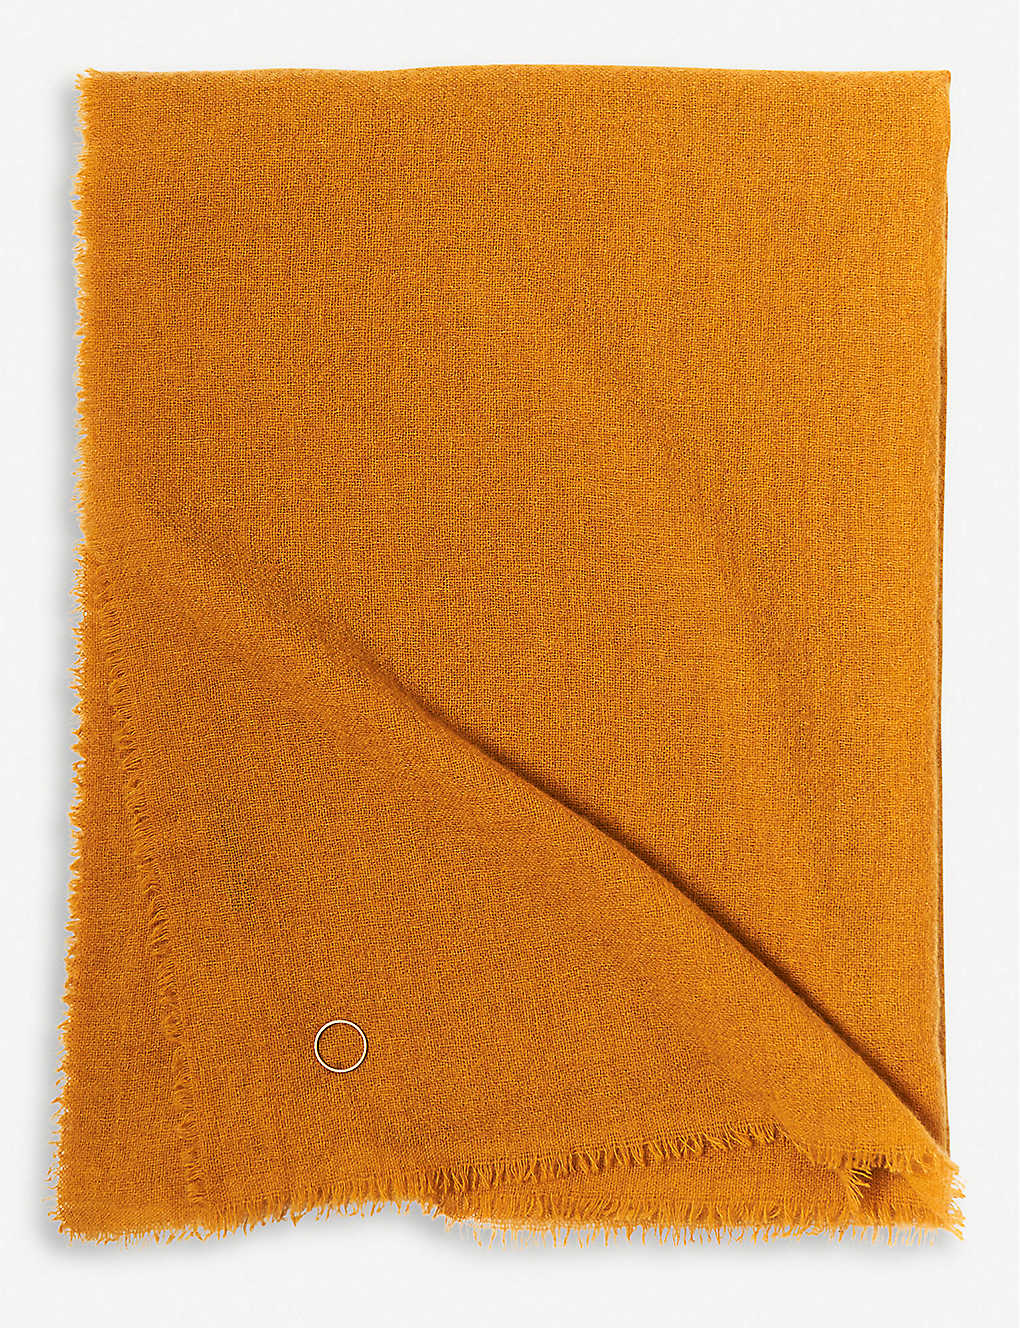 OYUNA: Esra cashmere two-tone throw 200x145cm